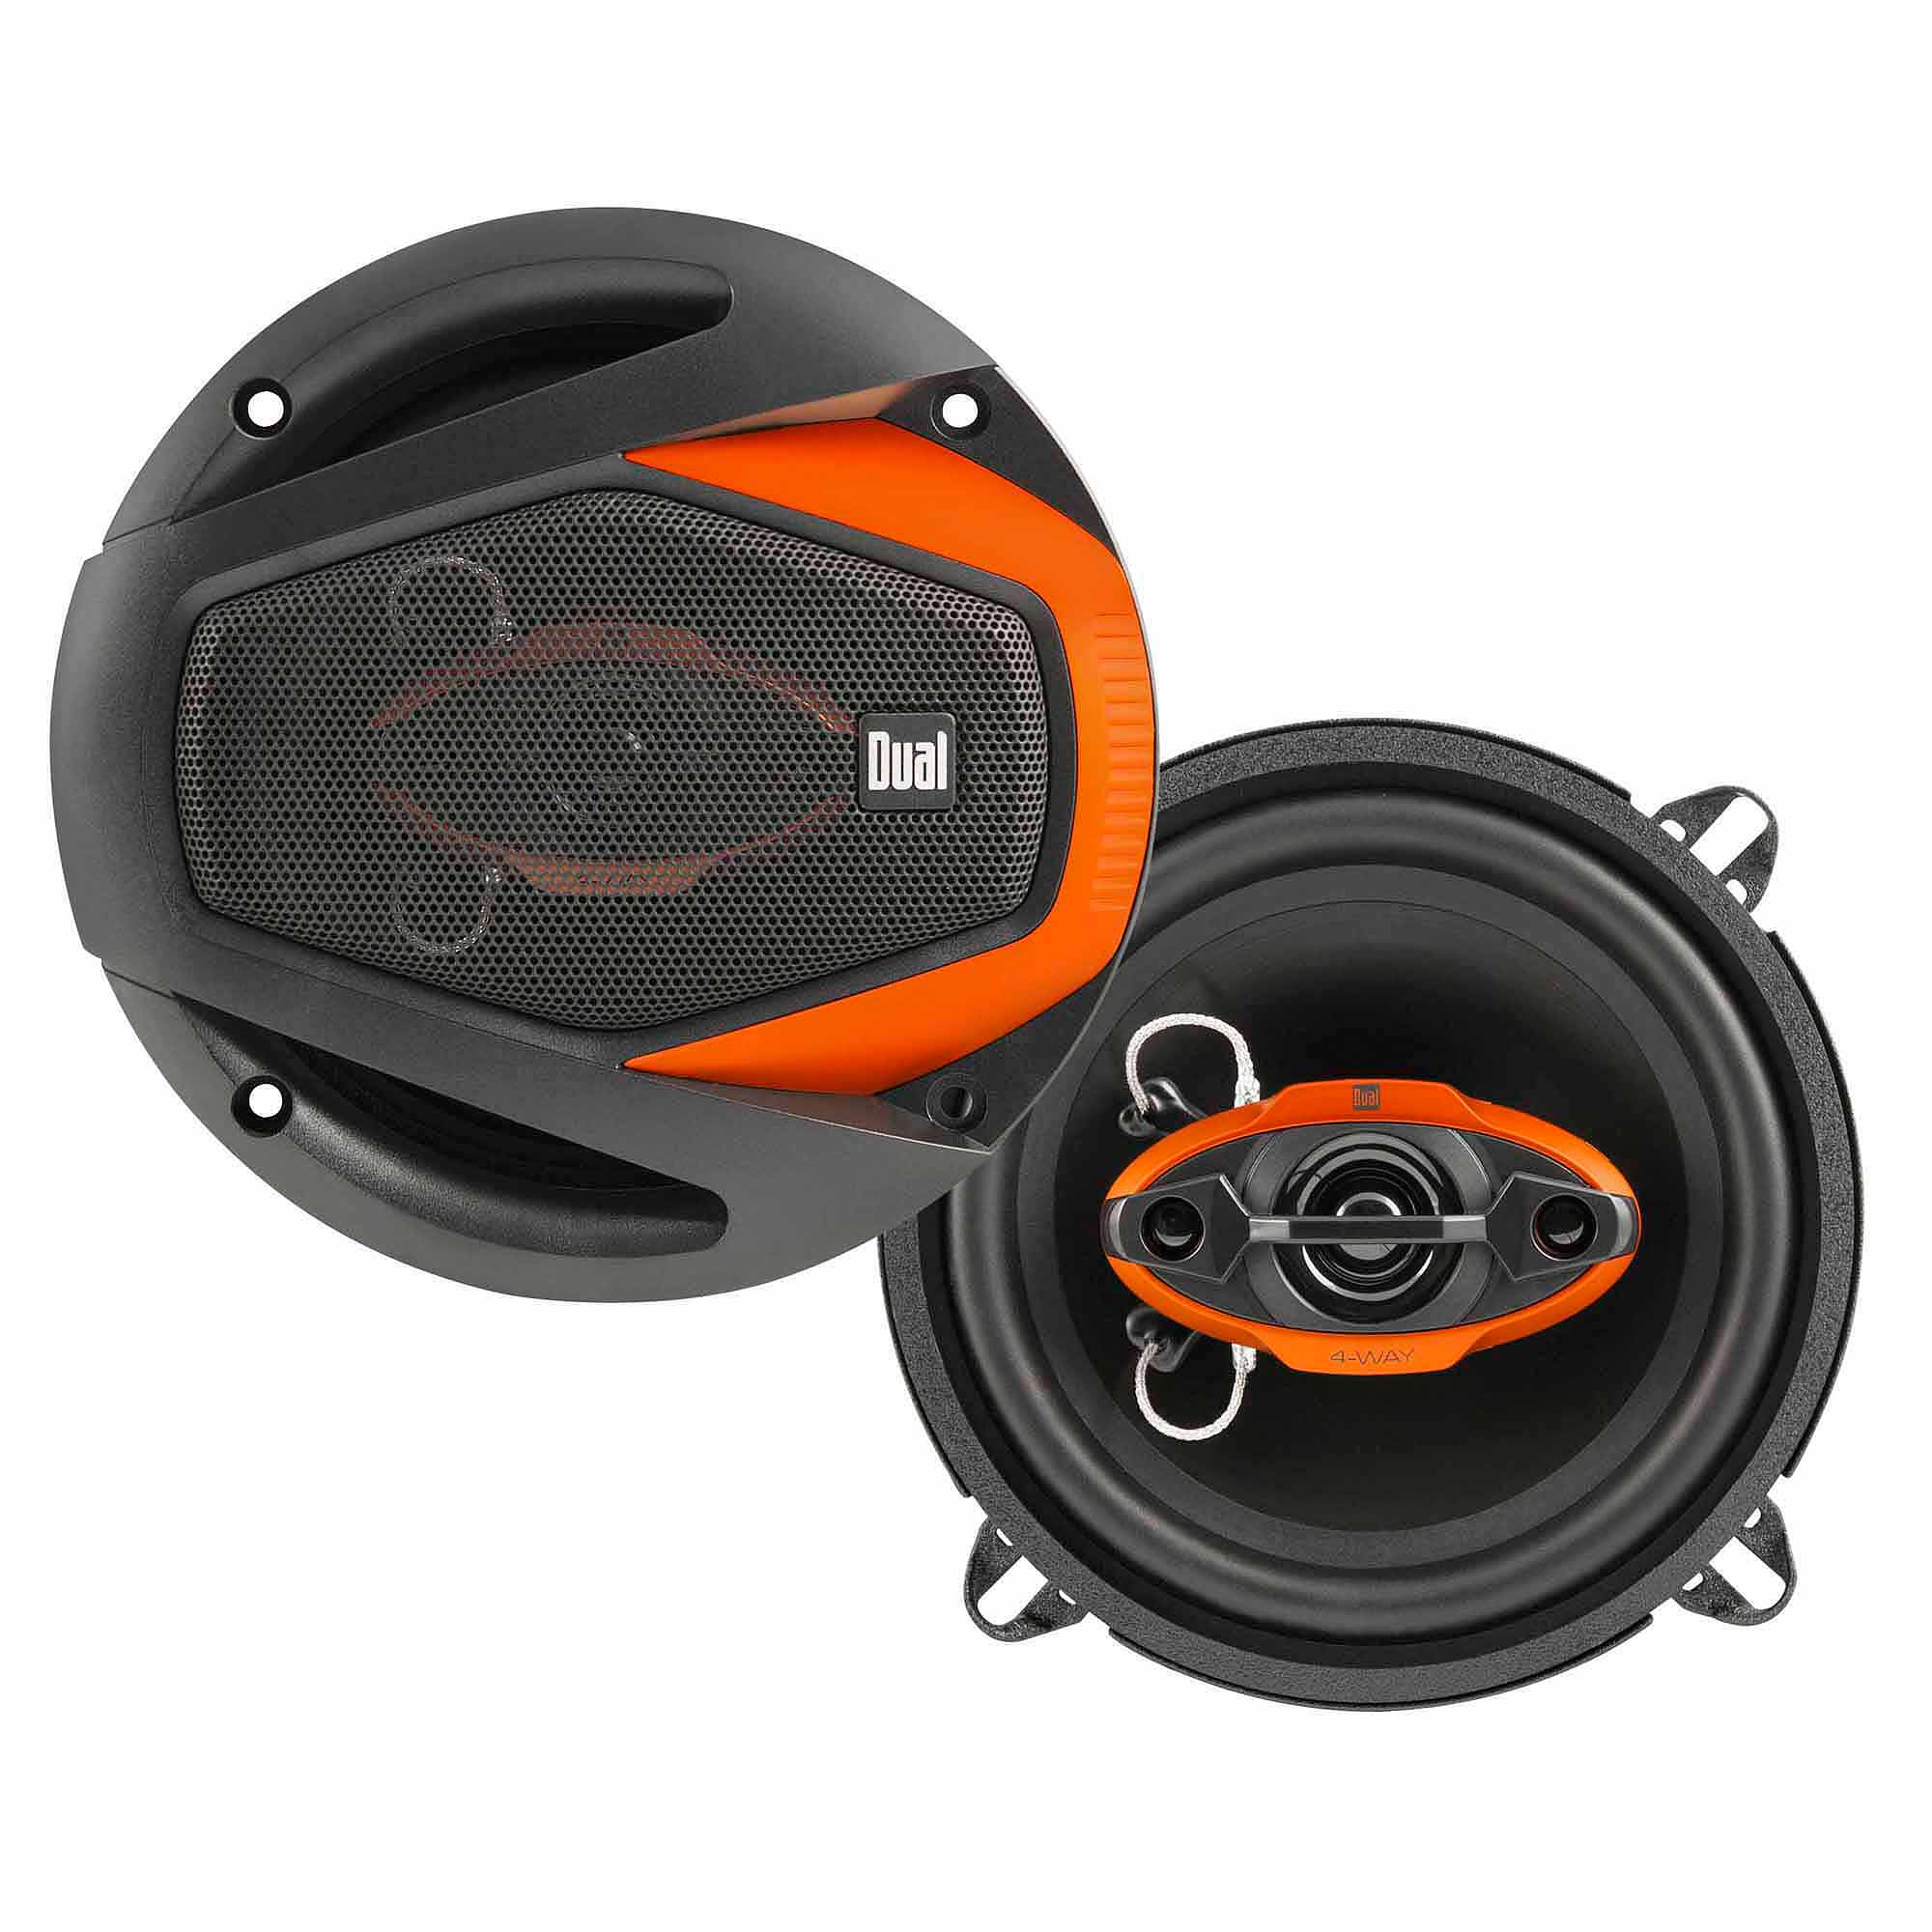 "Dual DWS524 125W 5.25"" 4-Way Speakers"